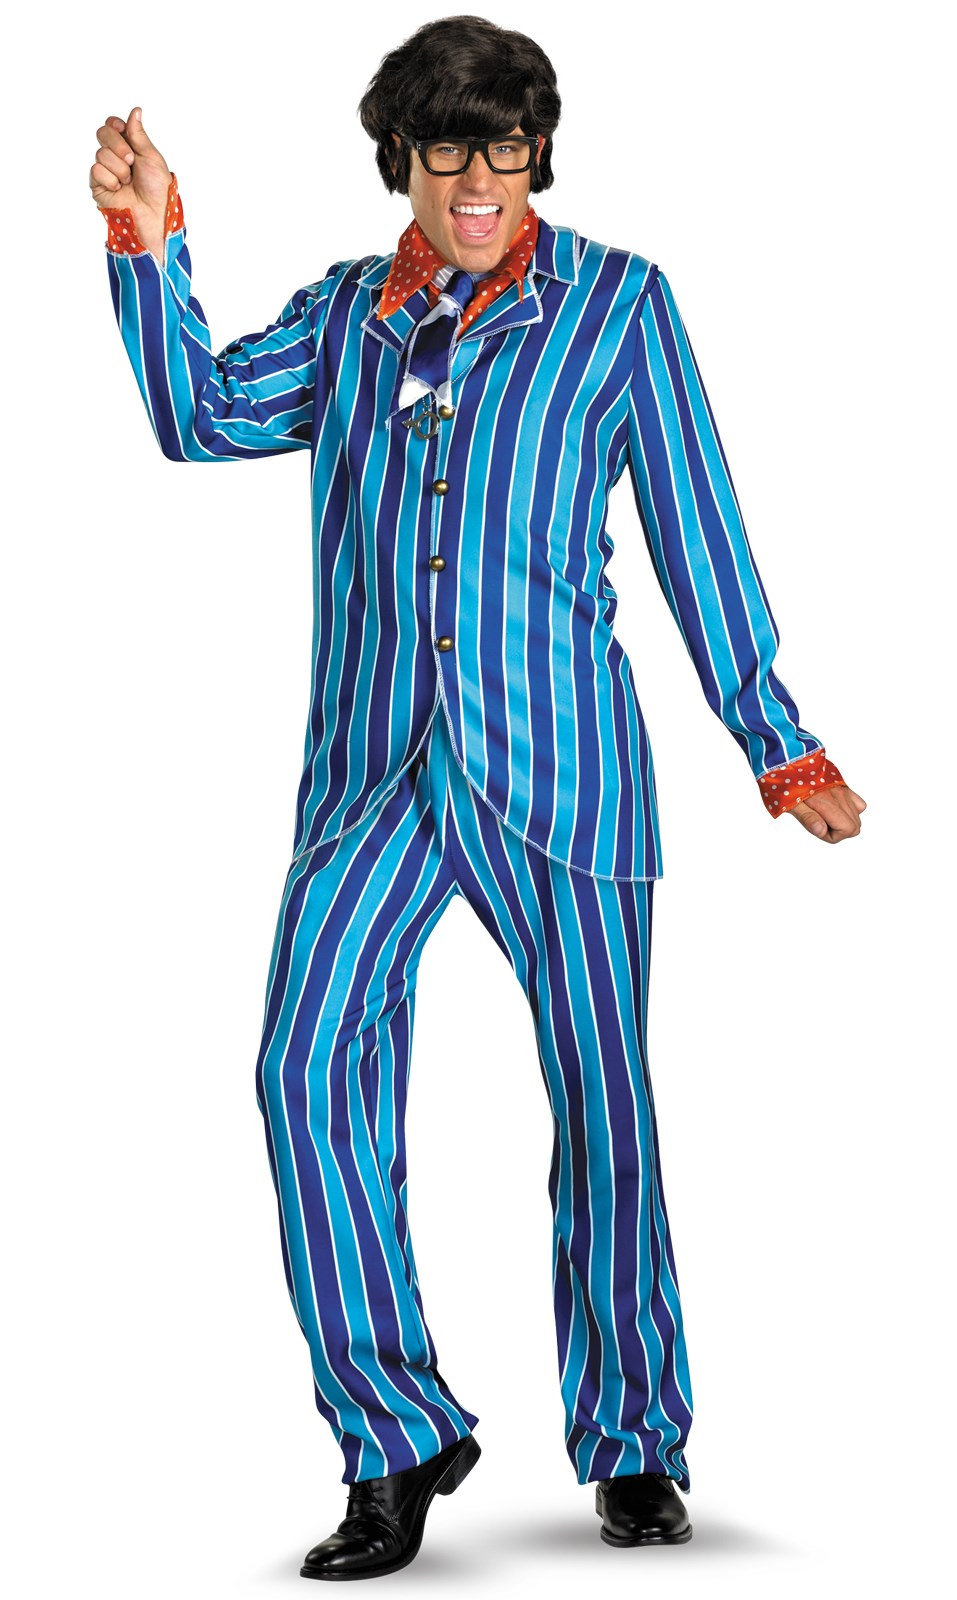 Image of Austin Powers Carnaby Street Blue Suit Deluxe Adult Plus Costume